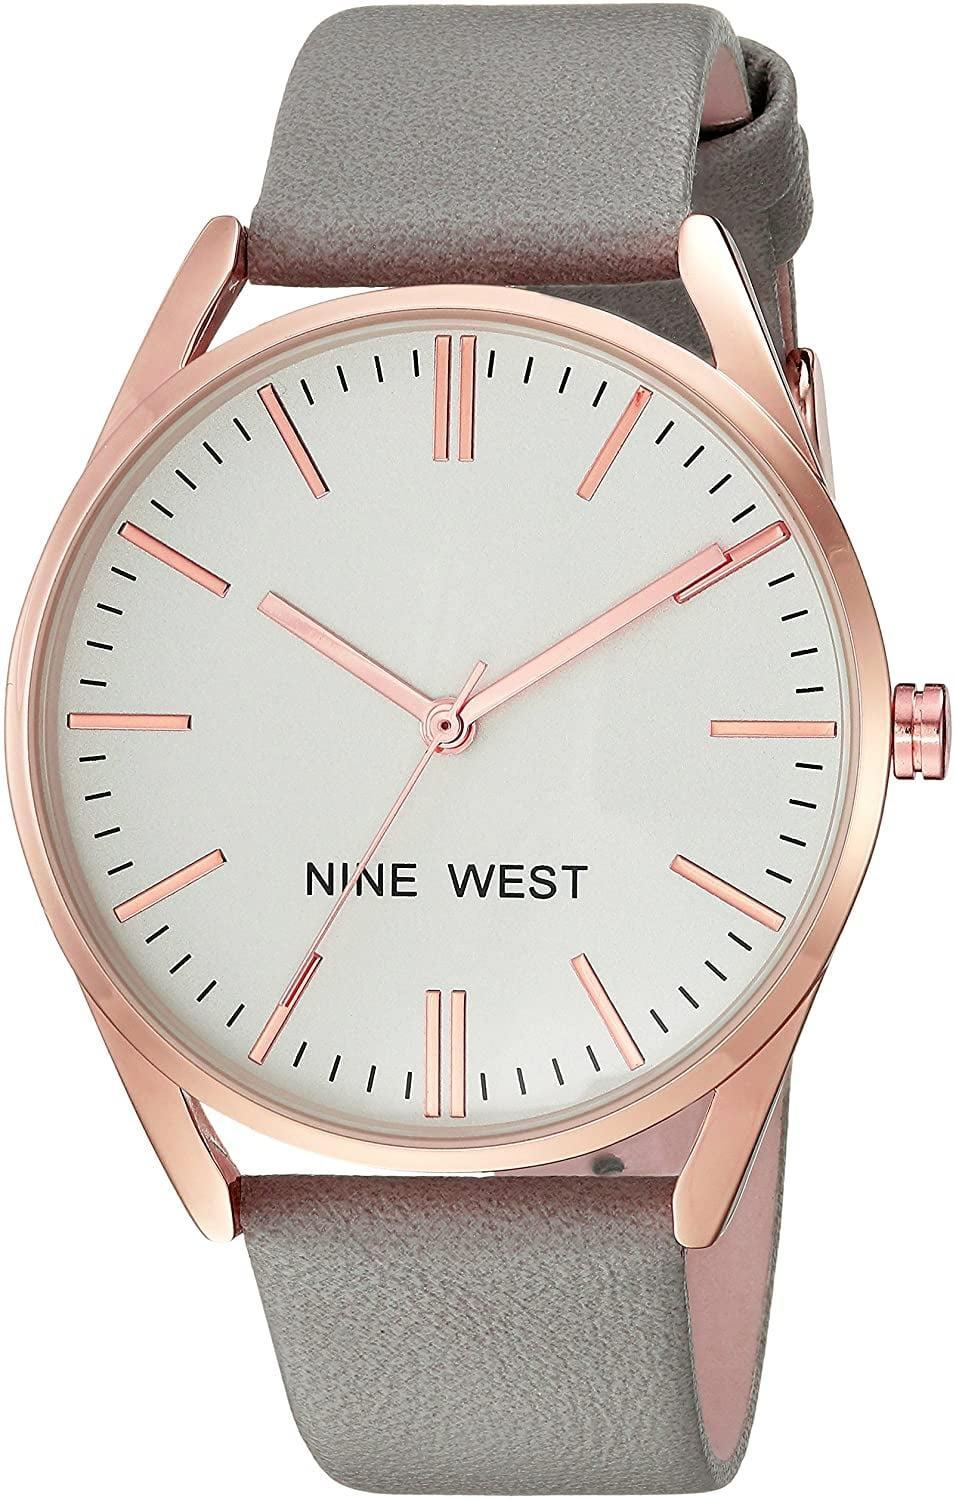 <p>This stylish <span>Nine West Strap Watch</span> ($28) is an incredibly good deal.</p>